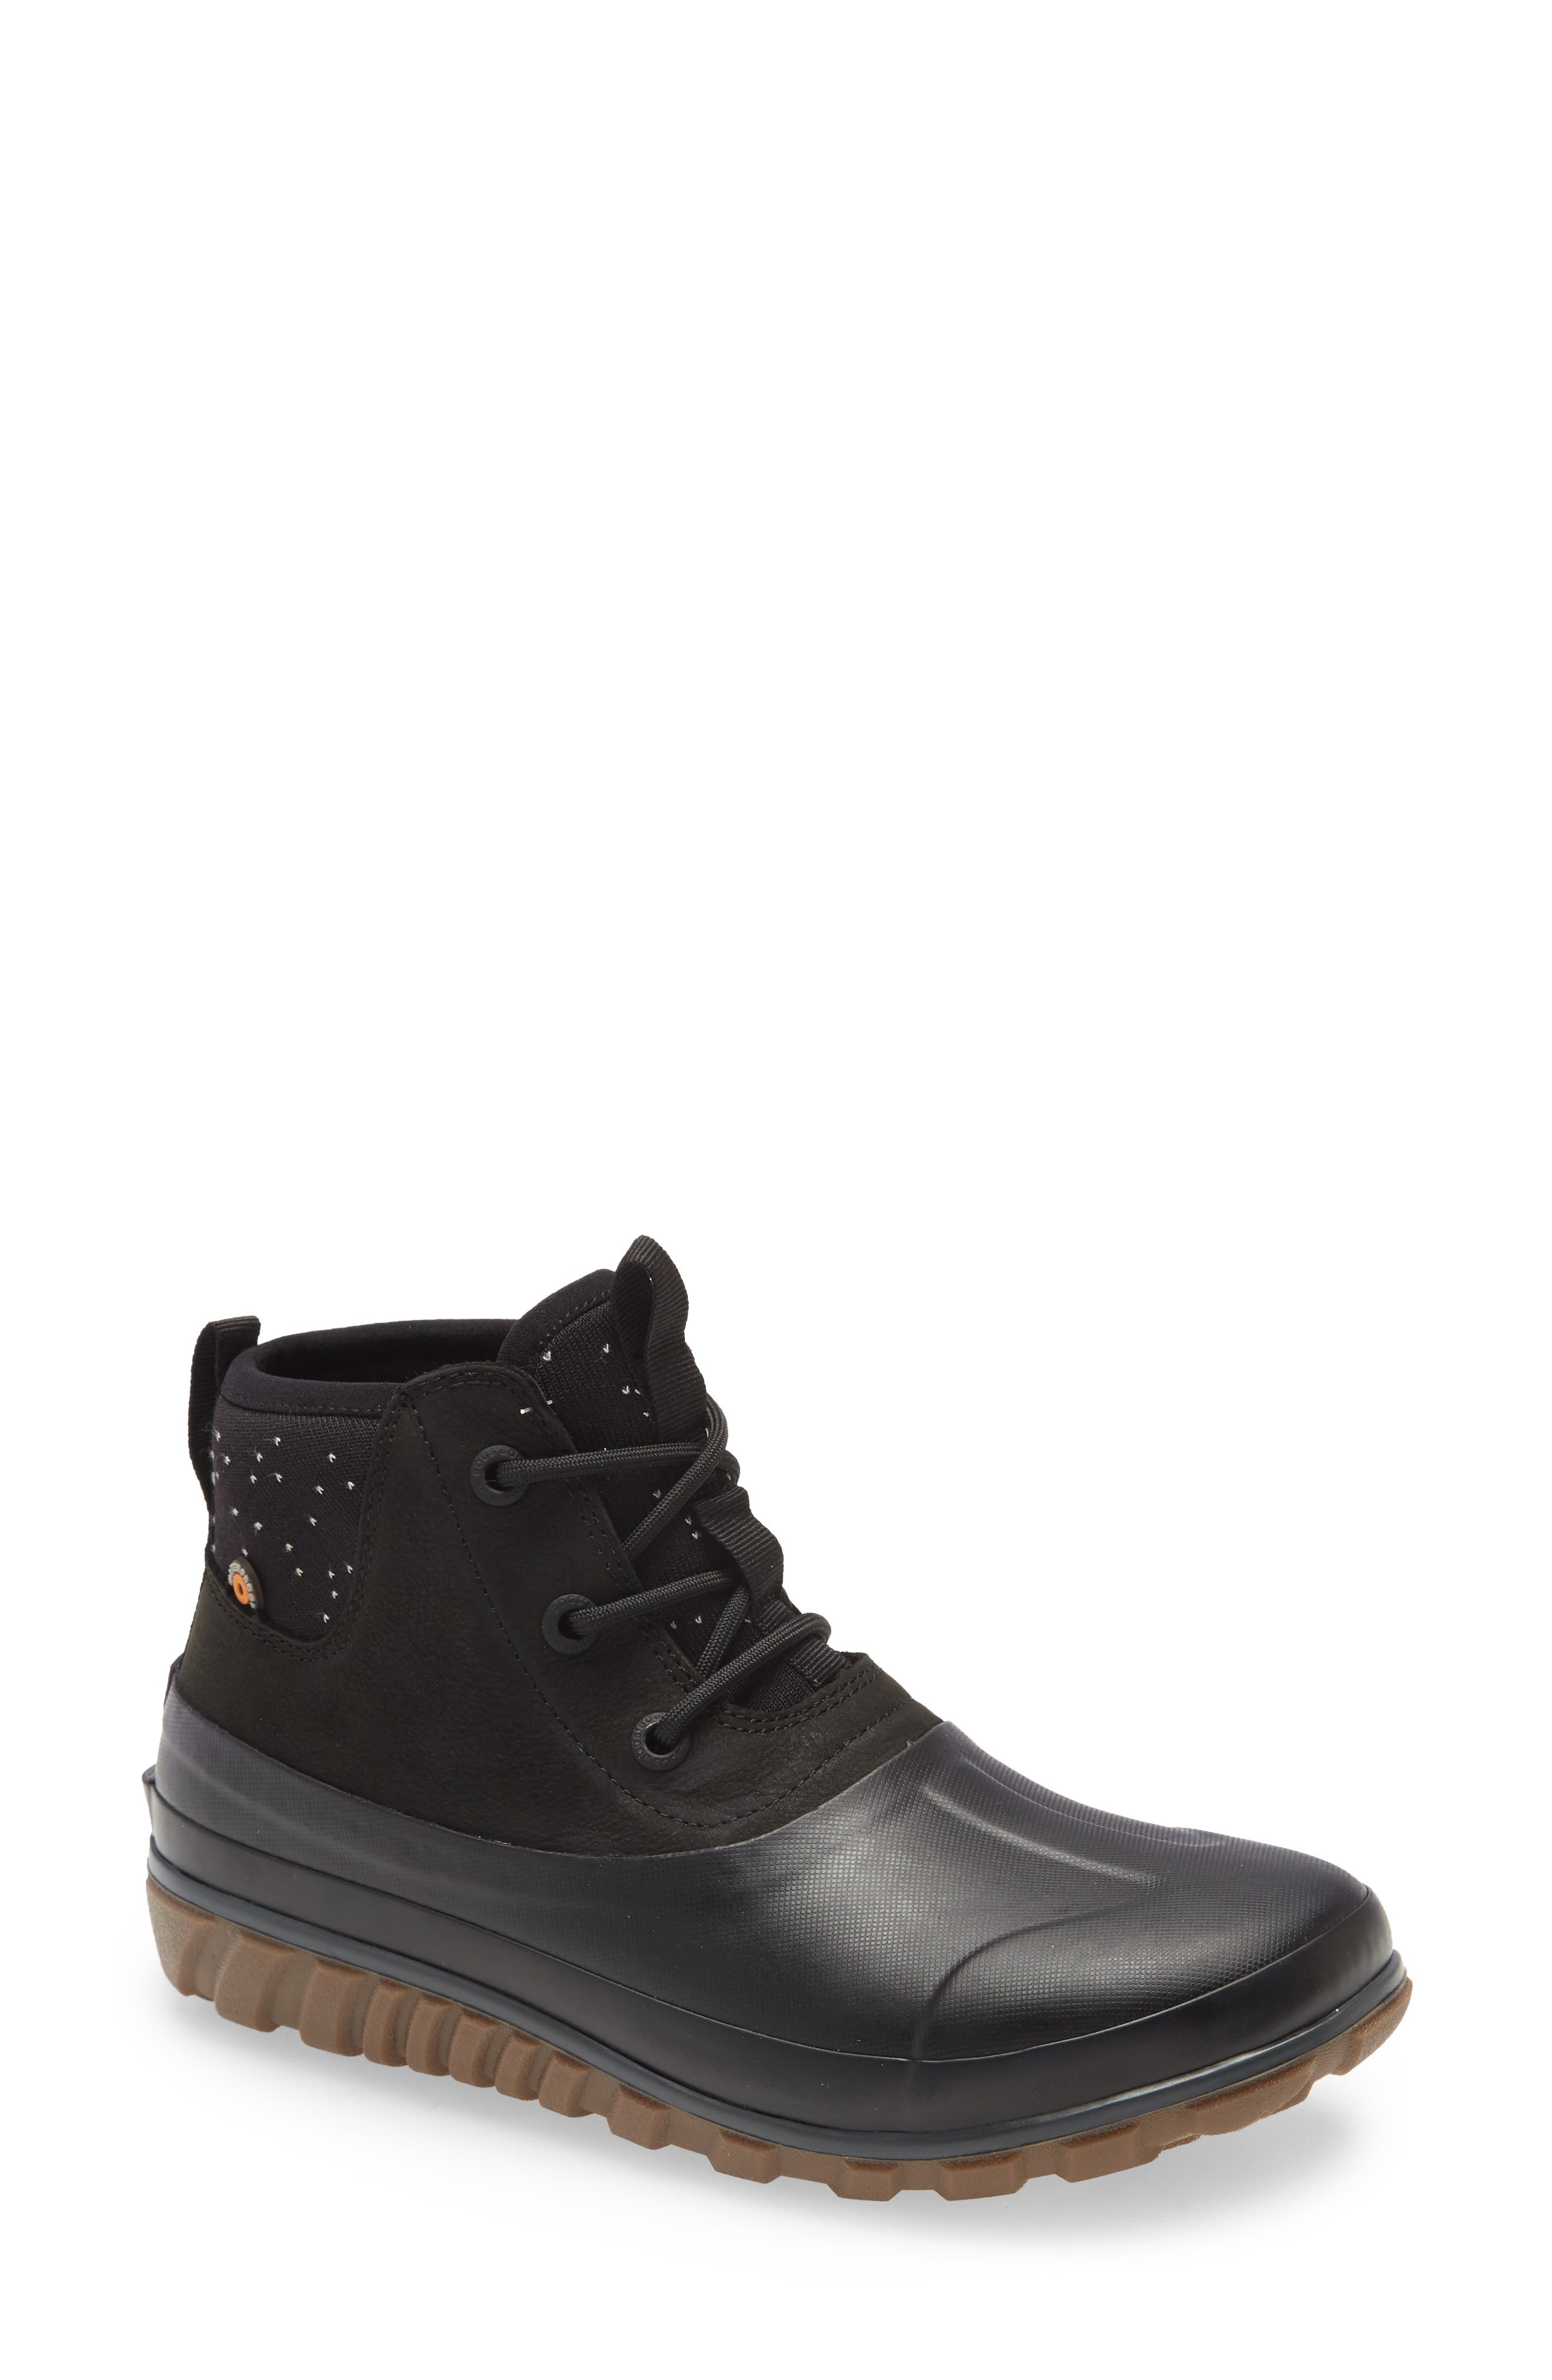 Casual Waterproof Lace-Up Bootie